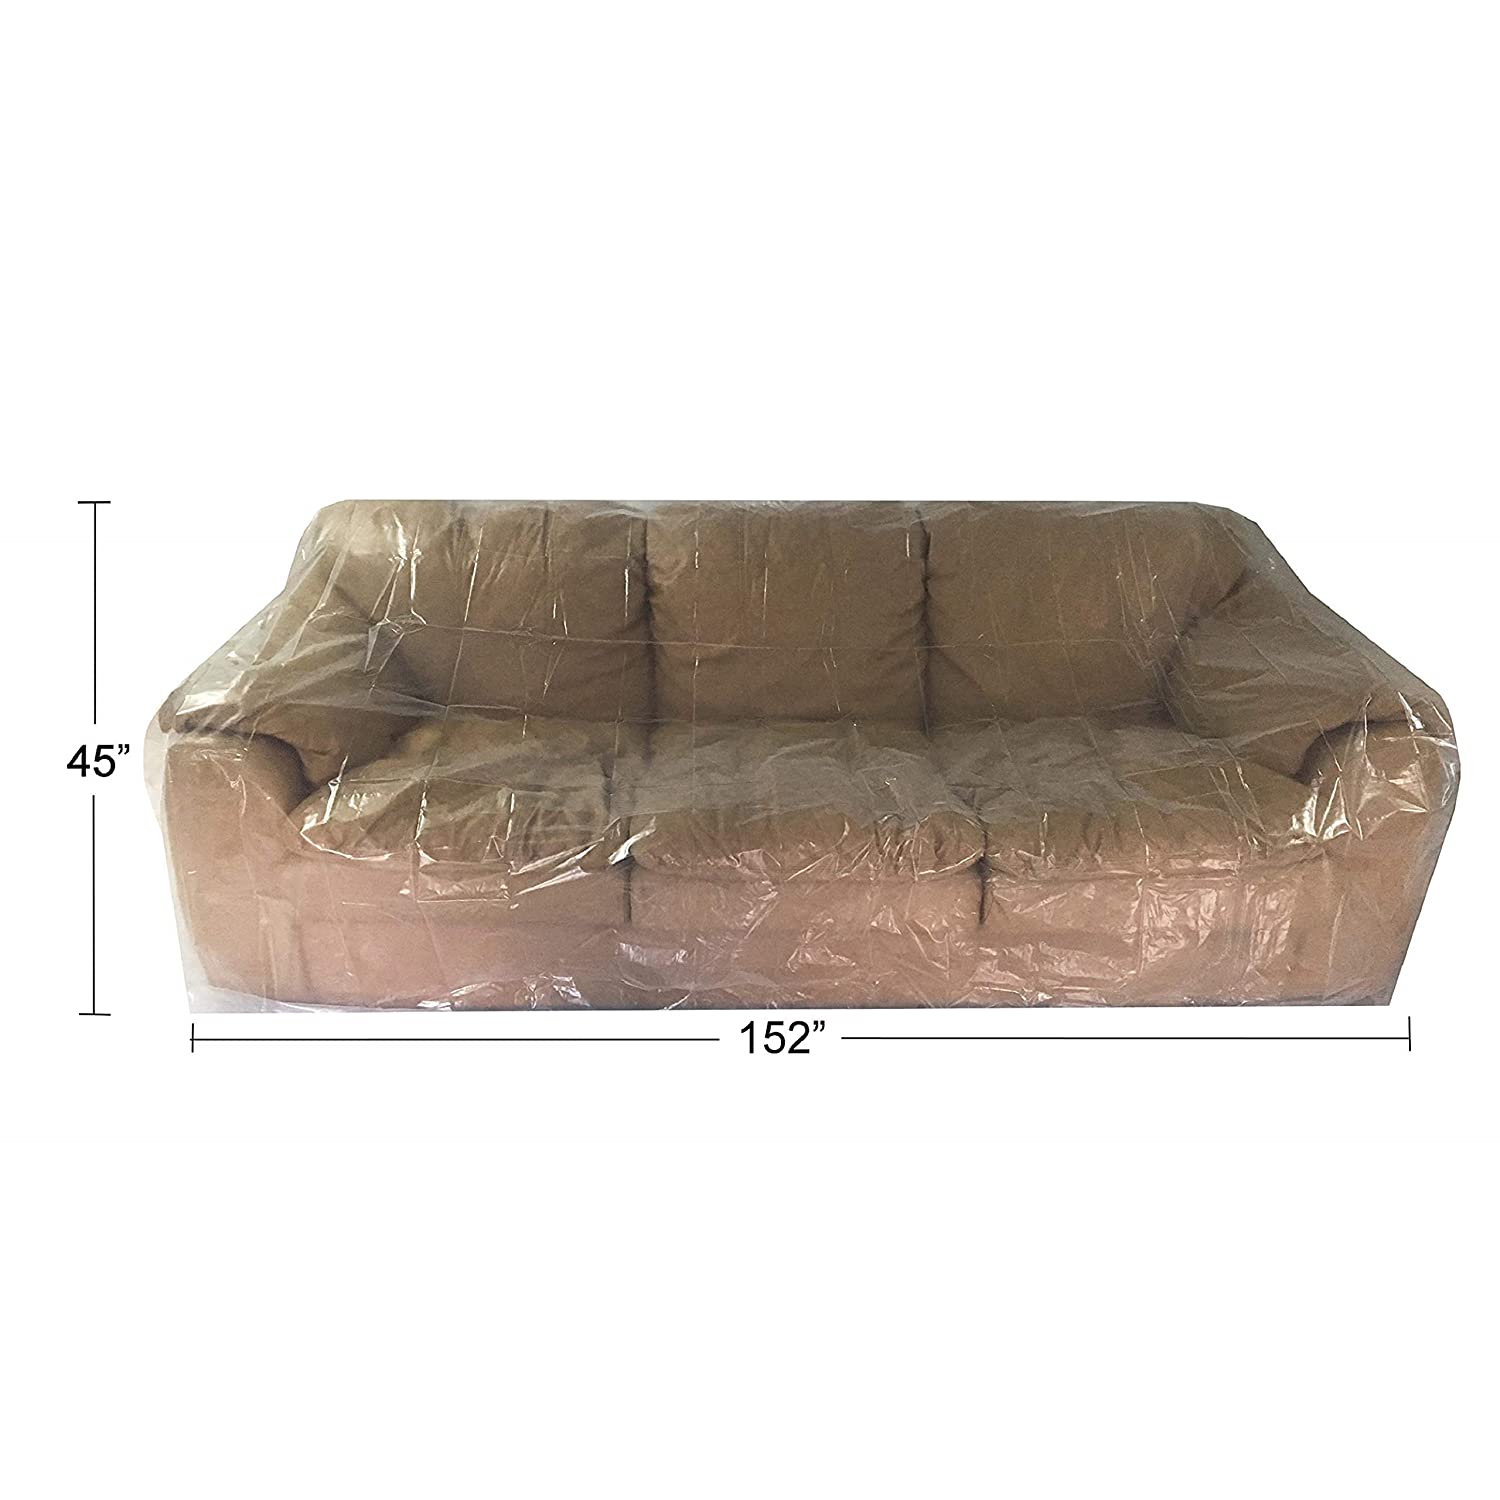 Uboxes Sofa Moving Covers (2 Pack) - 45